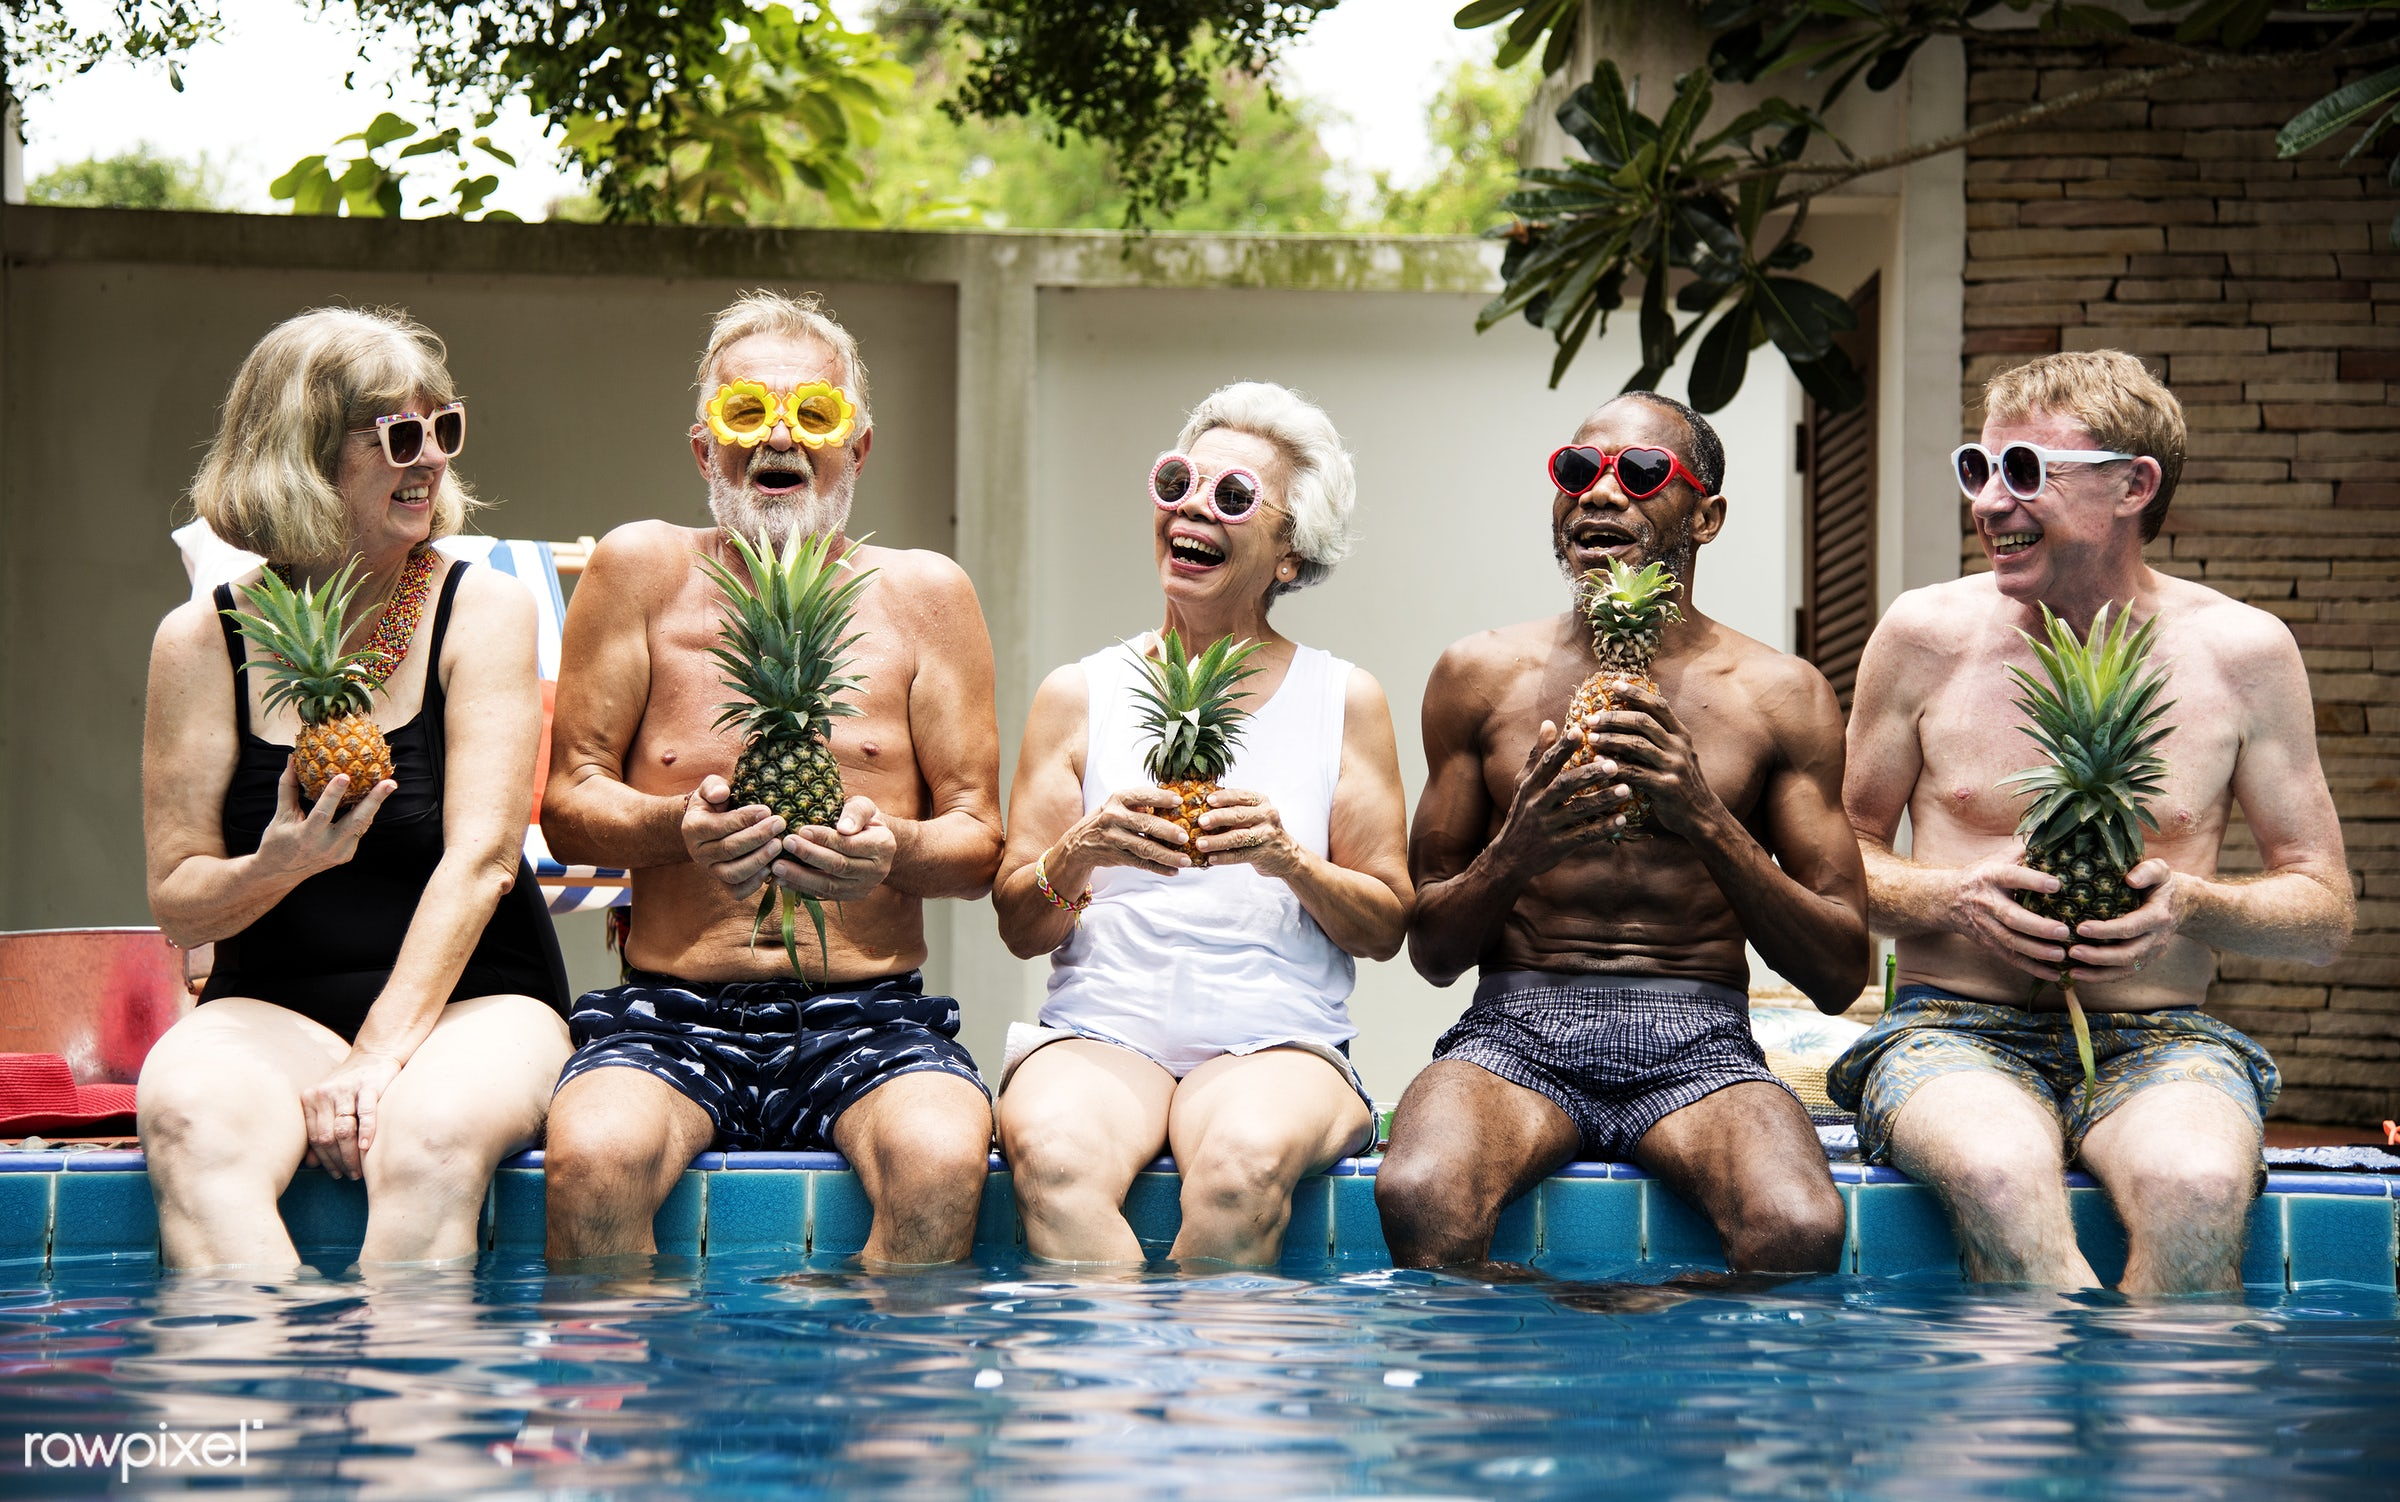 Group of diverse senior adults sitting at poolside holding pineapples together - happy, cheerful, diverse, enjoy, enjoying,...